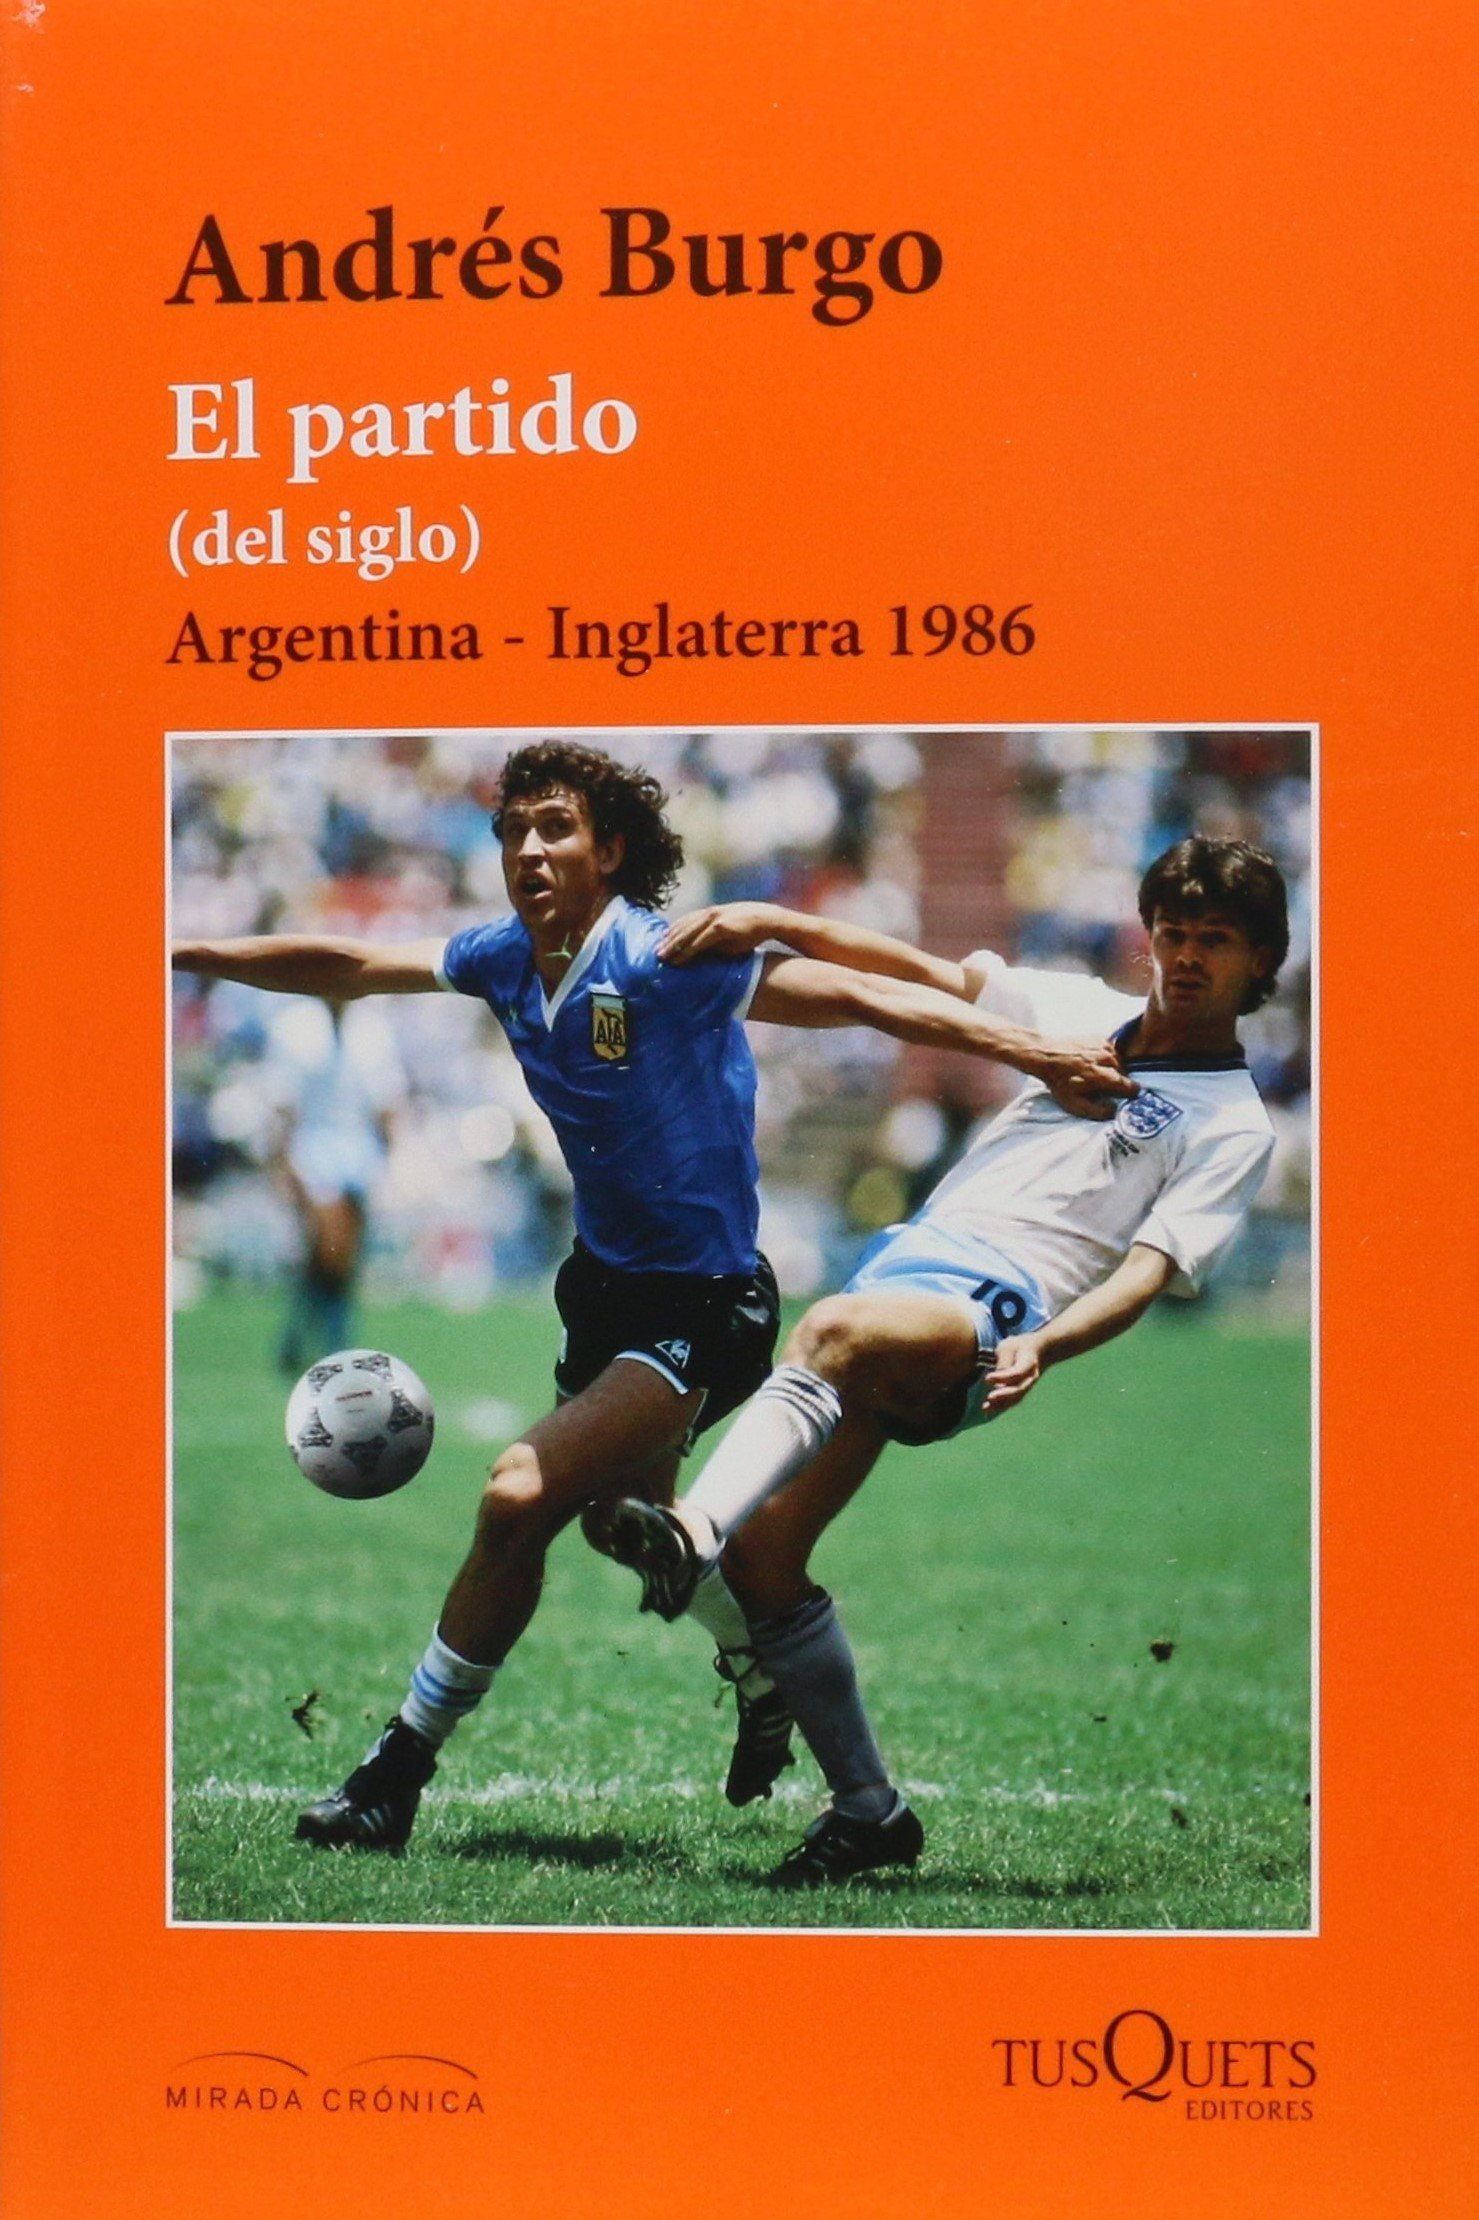 Argentina - Inglaterra 1986 (Spanish Edition): Andre Burgo: 9786074217827: Amazon.com: Books